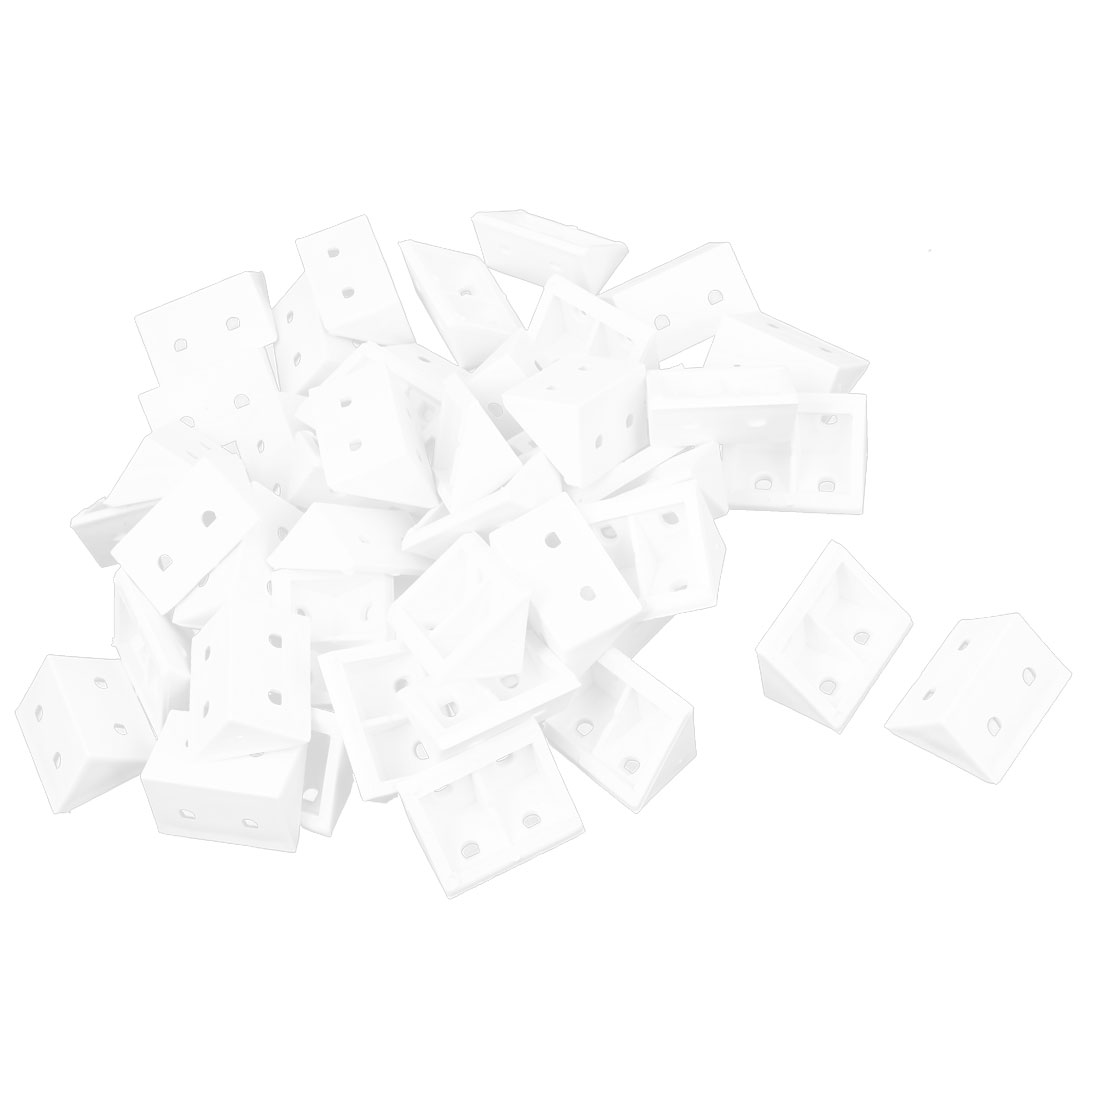 Plastic Shelf Door Cabinet Right Angle Corner Brace Bracket White 50 Pcs